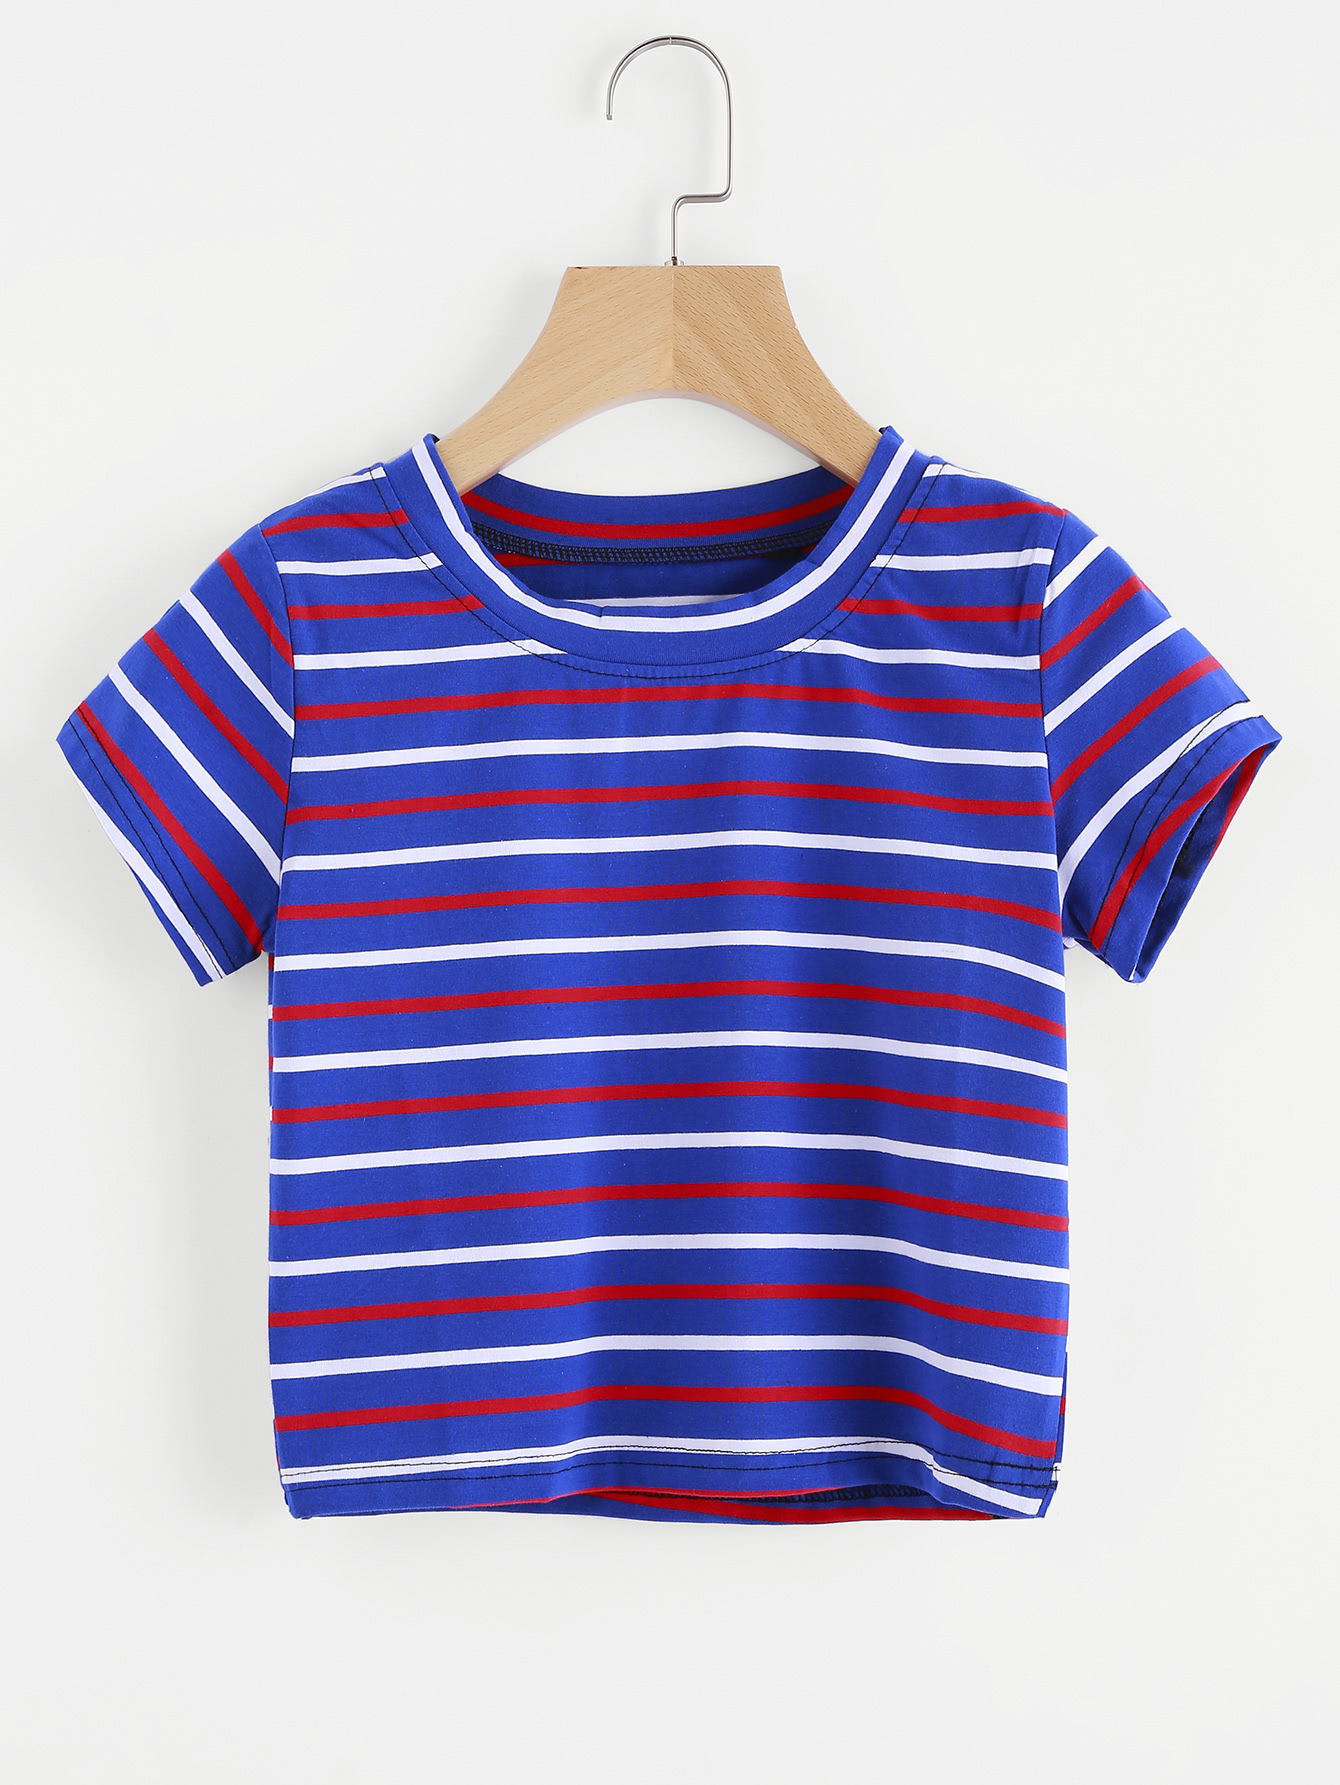 66c78ab667 Shop Contrast Striped Tee online. SheIn offers Contrast Striped Tee & more  to fit your fashionable needs.